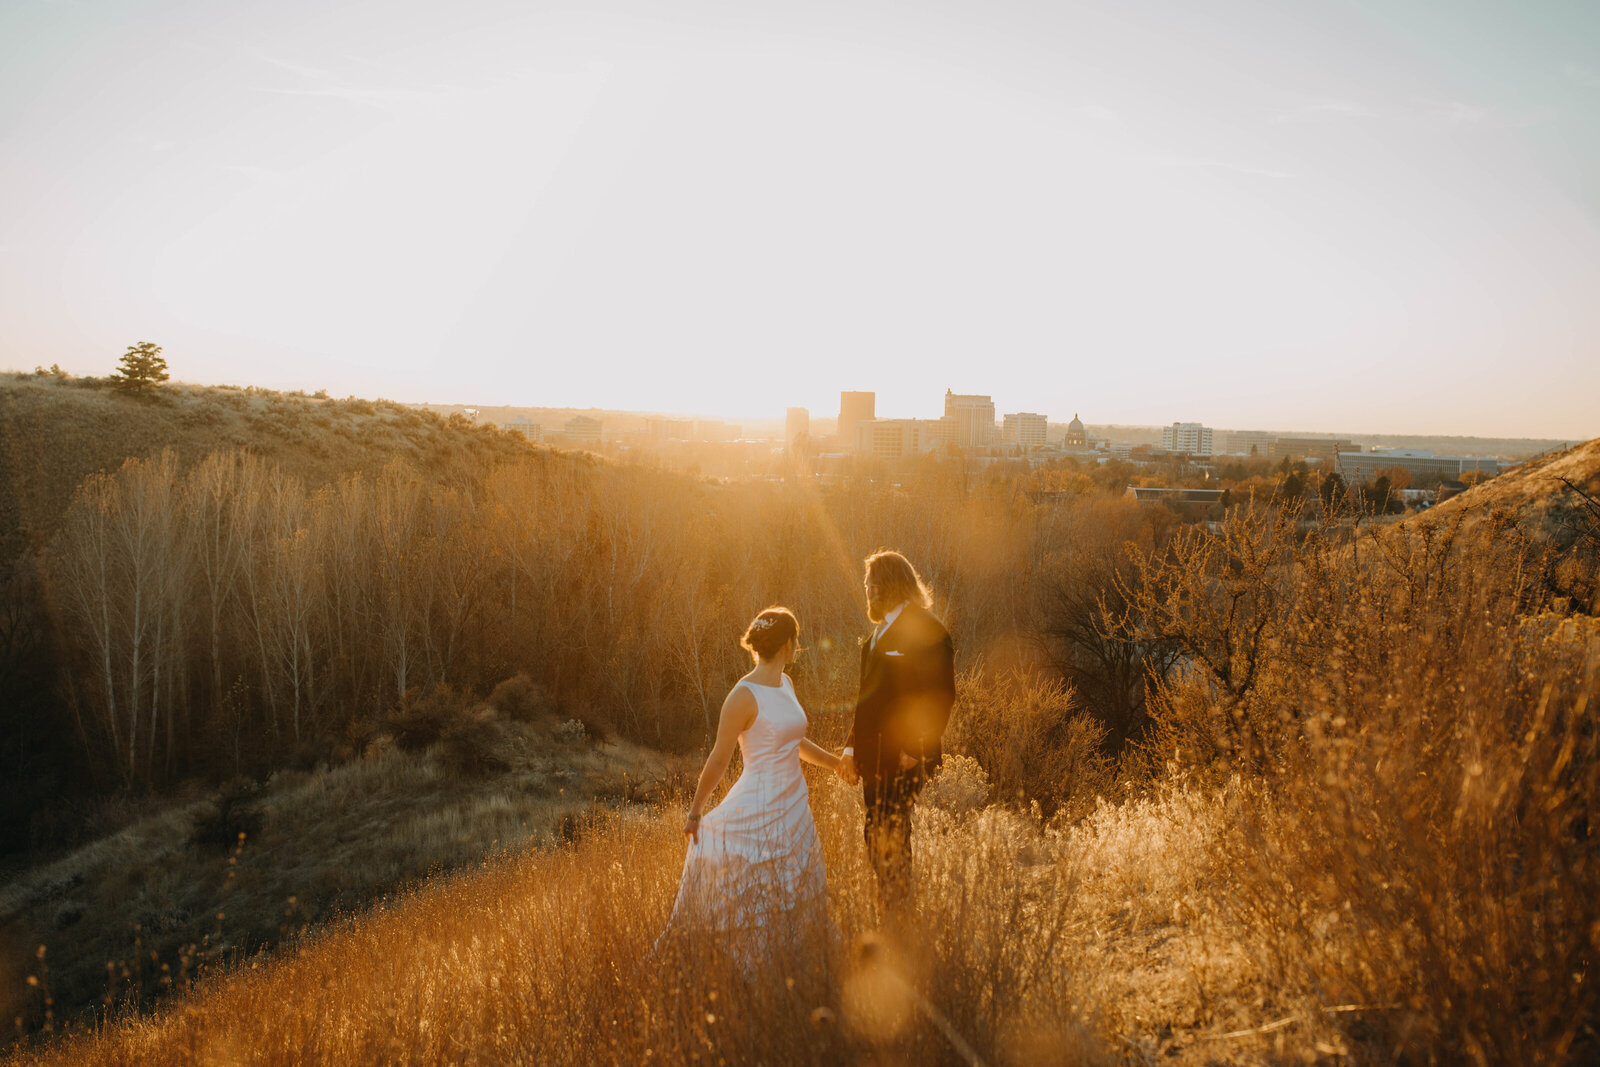 gabrielli-bride-groom-sunset-149